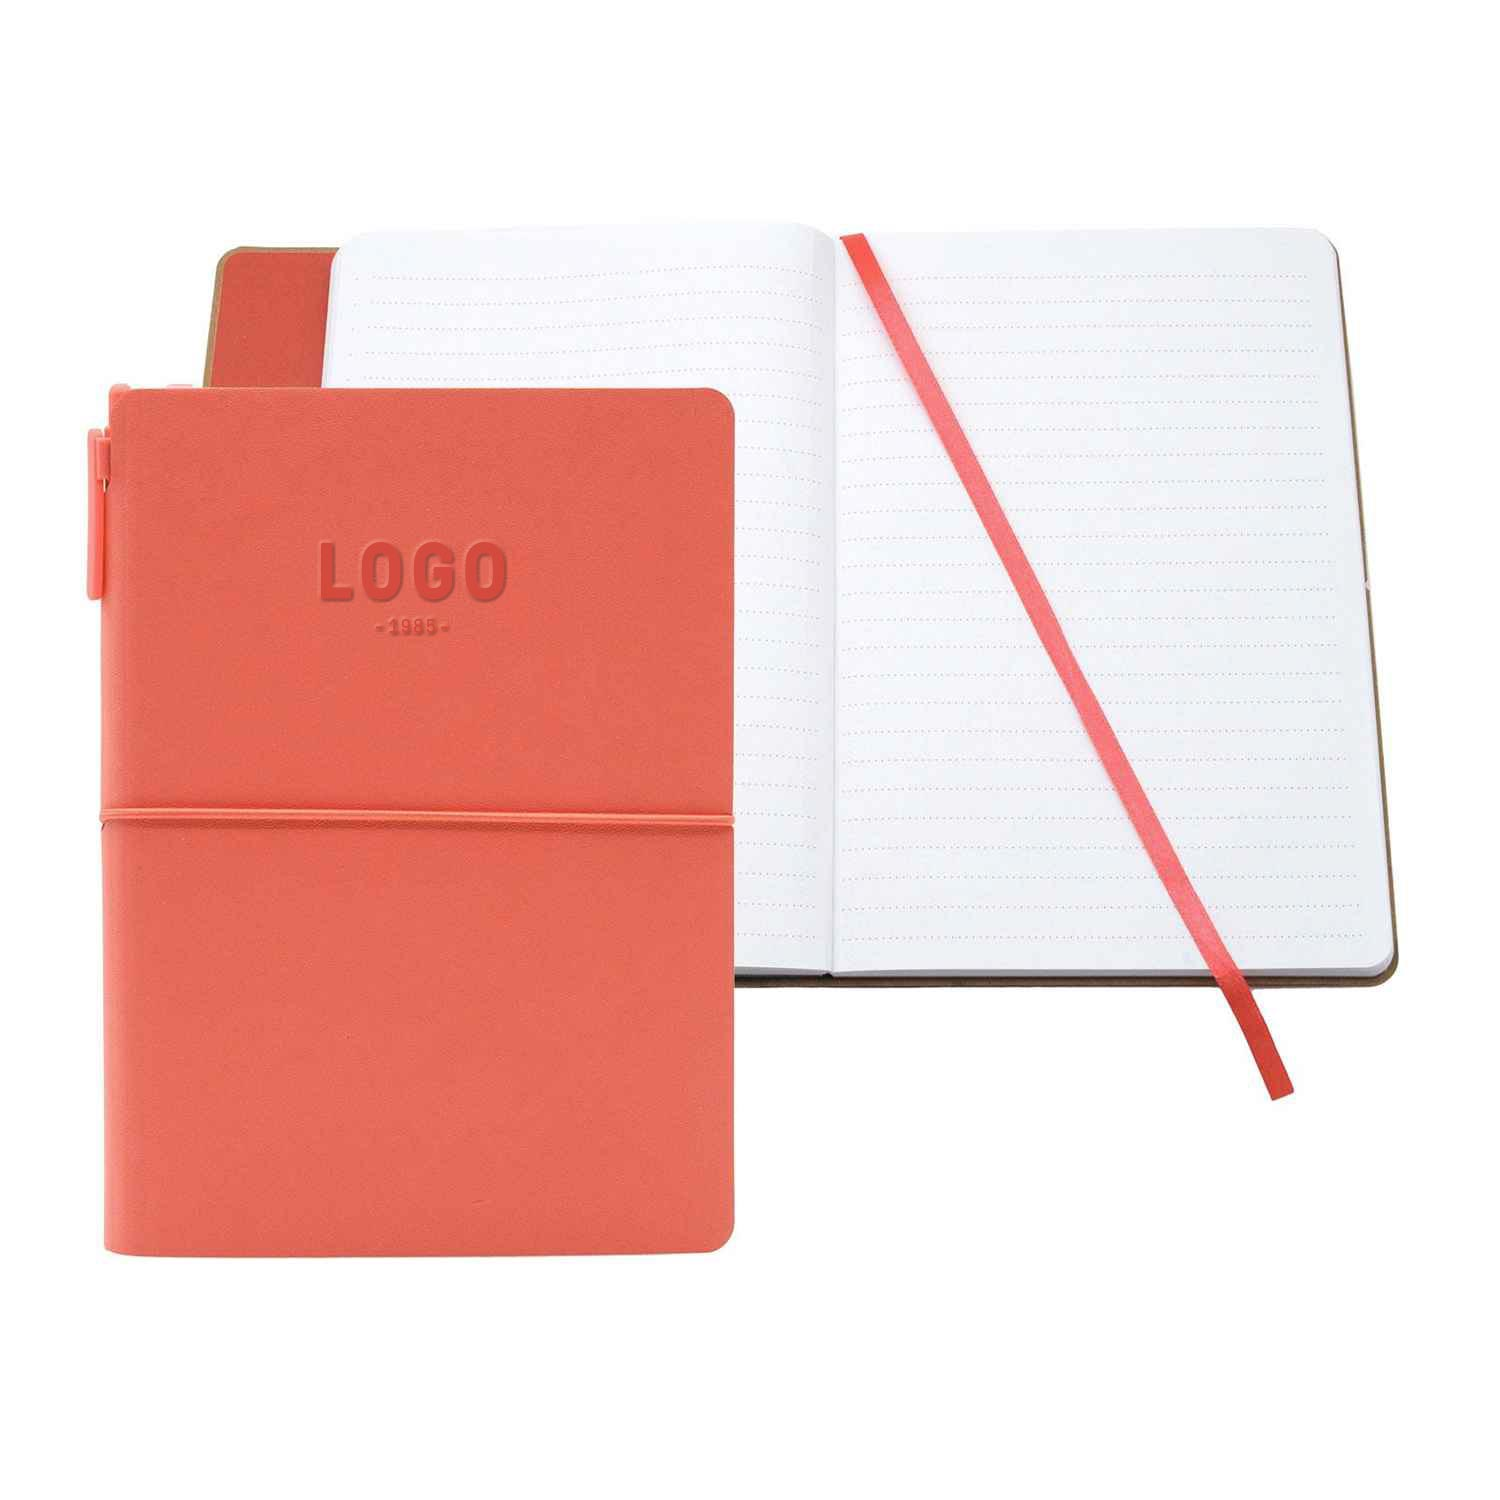 130191 small rio journal with pen one color hotstamp or blind deboss